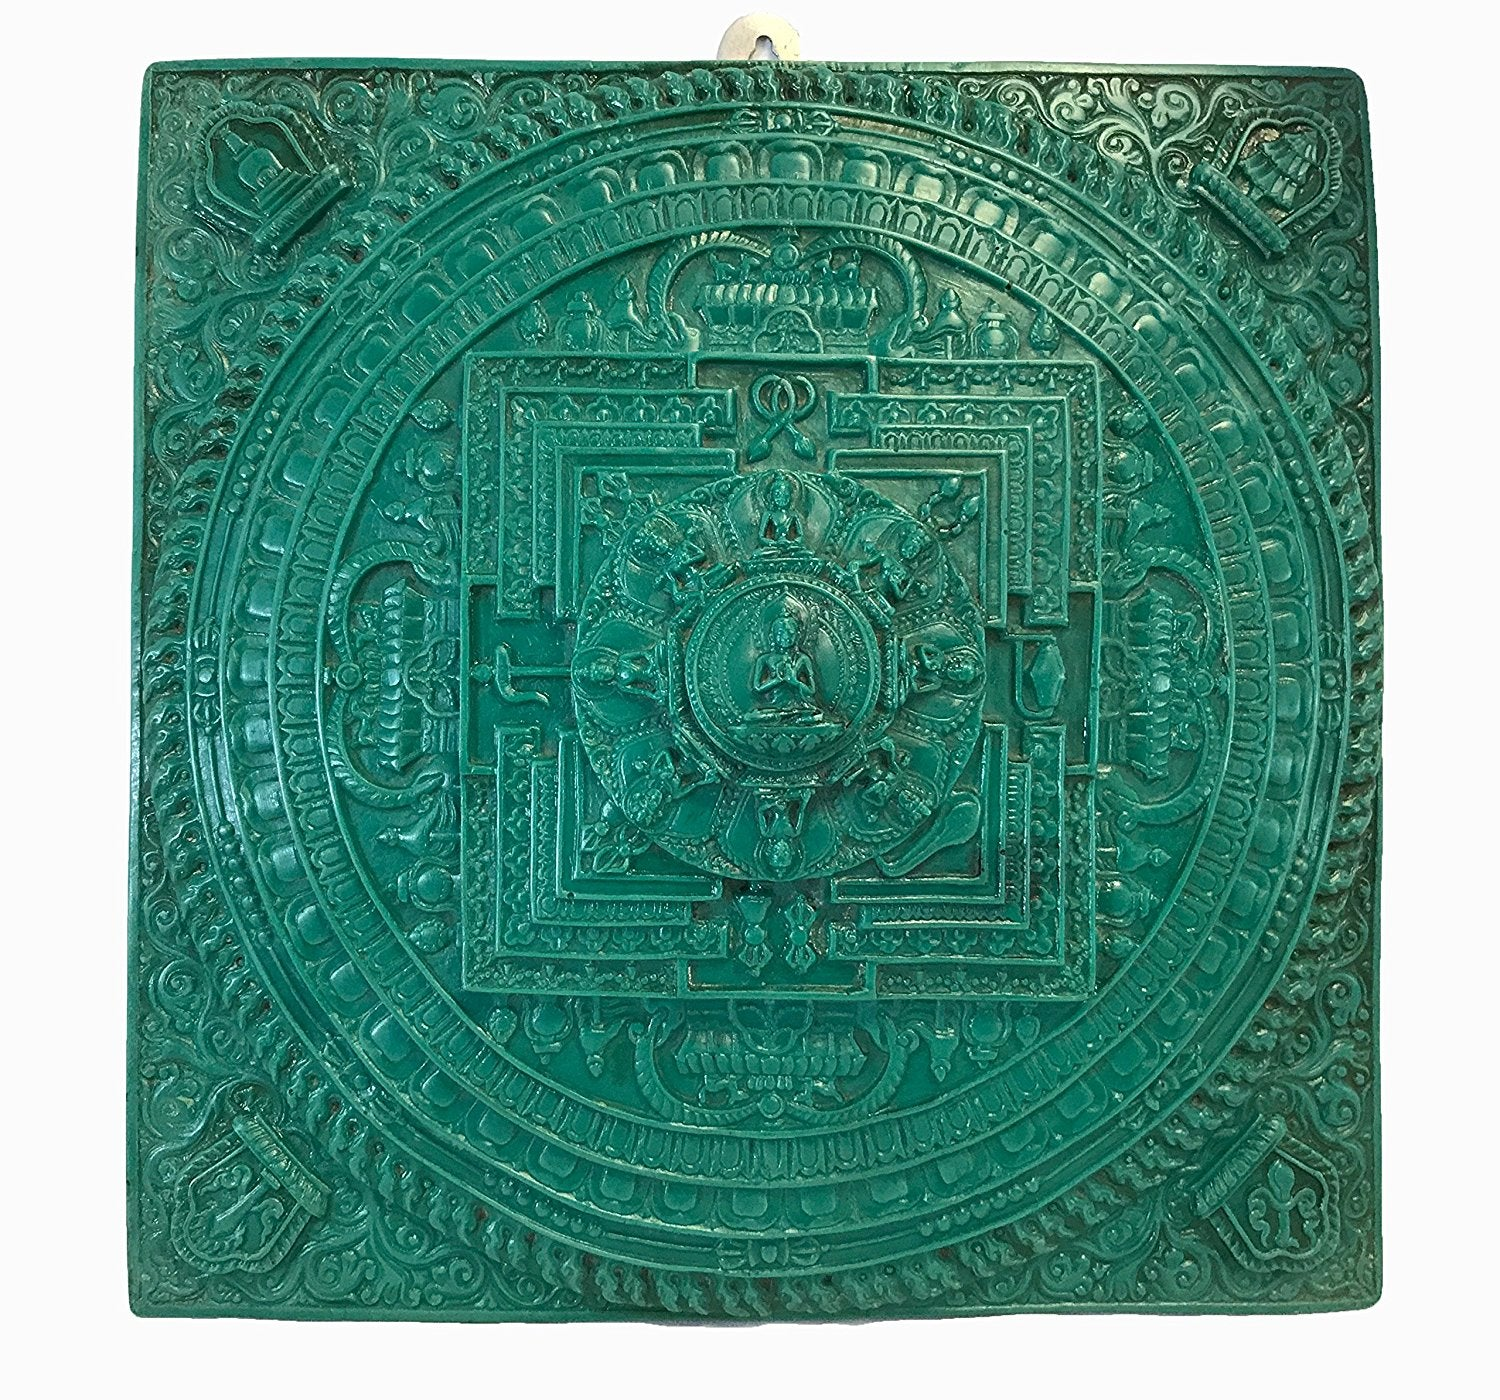 Mandala Decorative Plaque Wall Decor Art Sculpture From Himalaya - Agan Traders, Turquoise